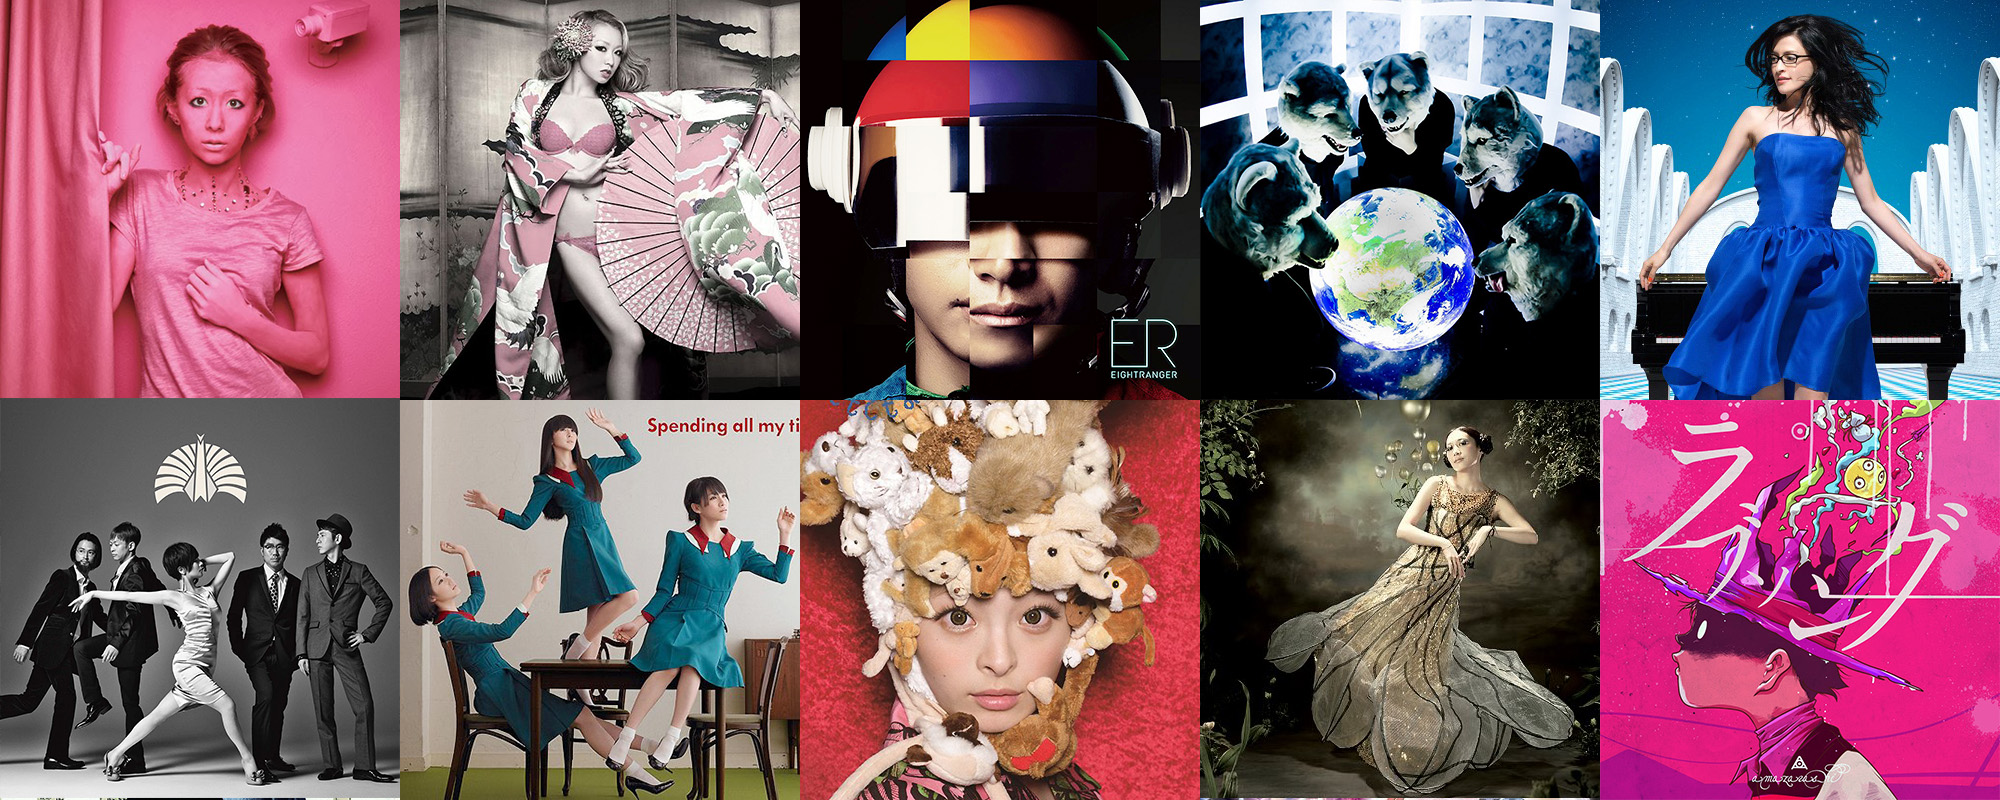 Best J-Pop J-Rock album covers 2012